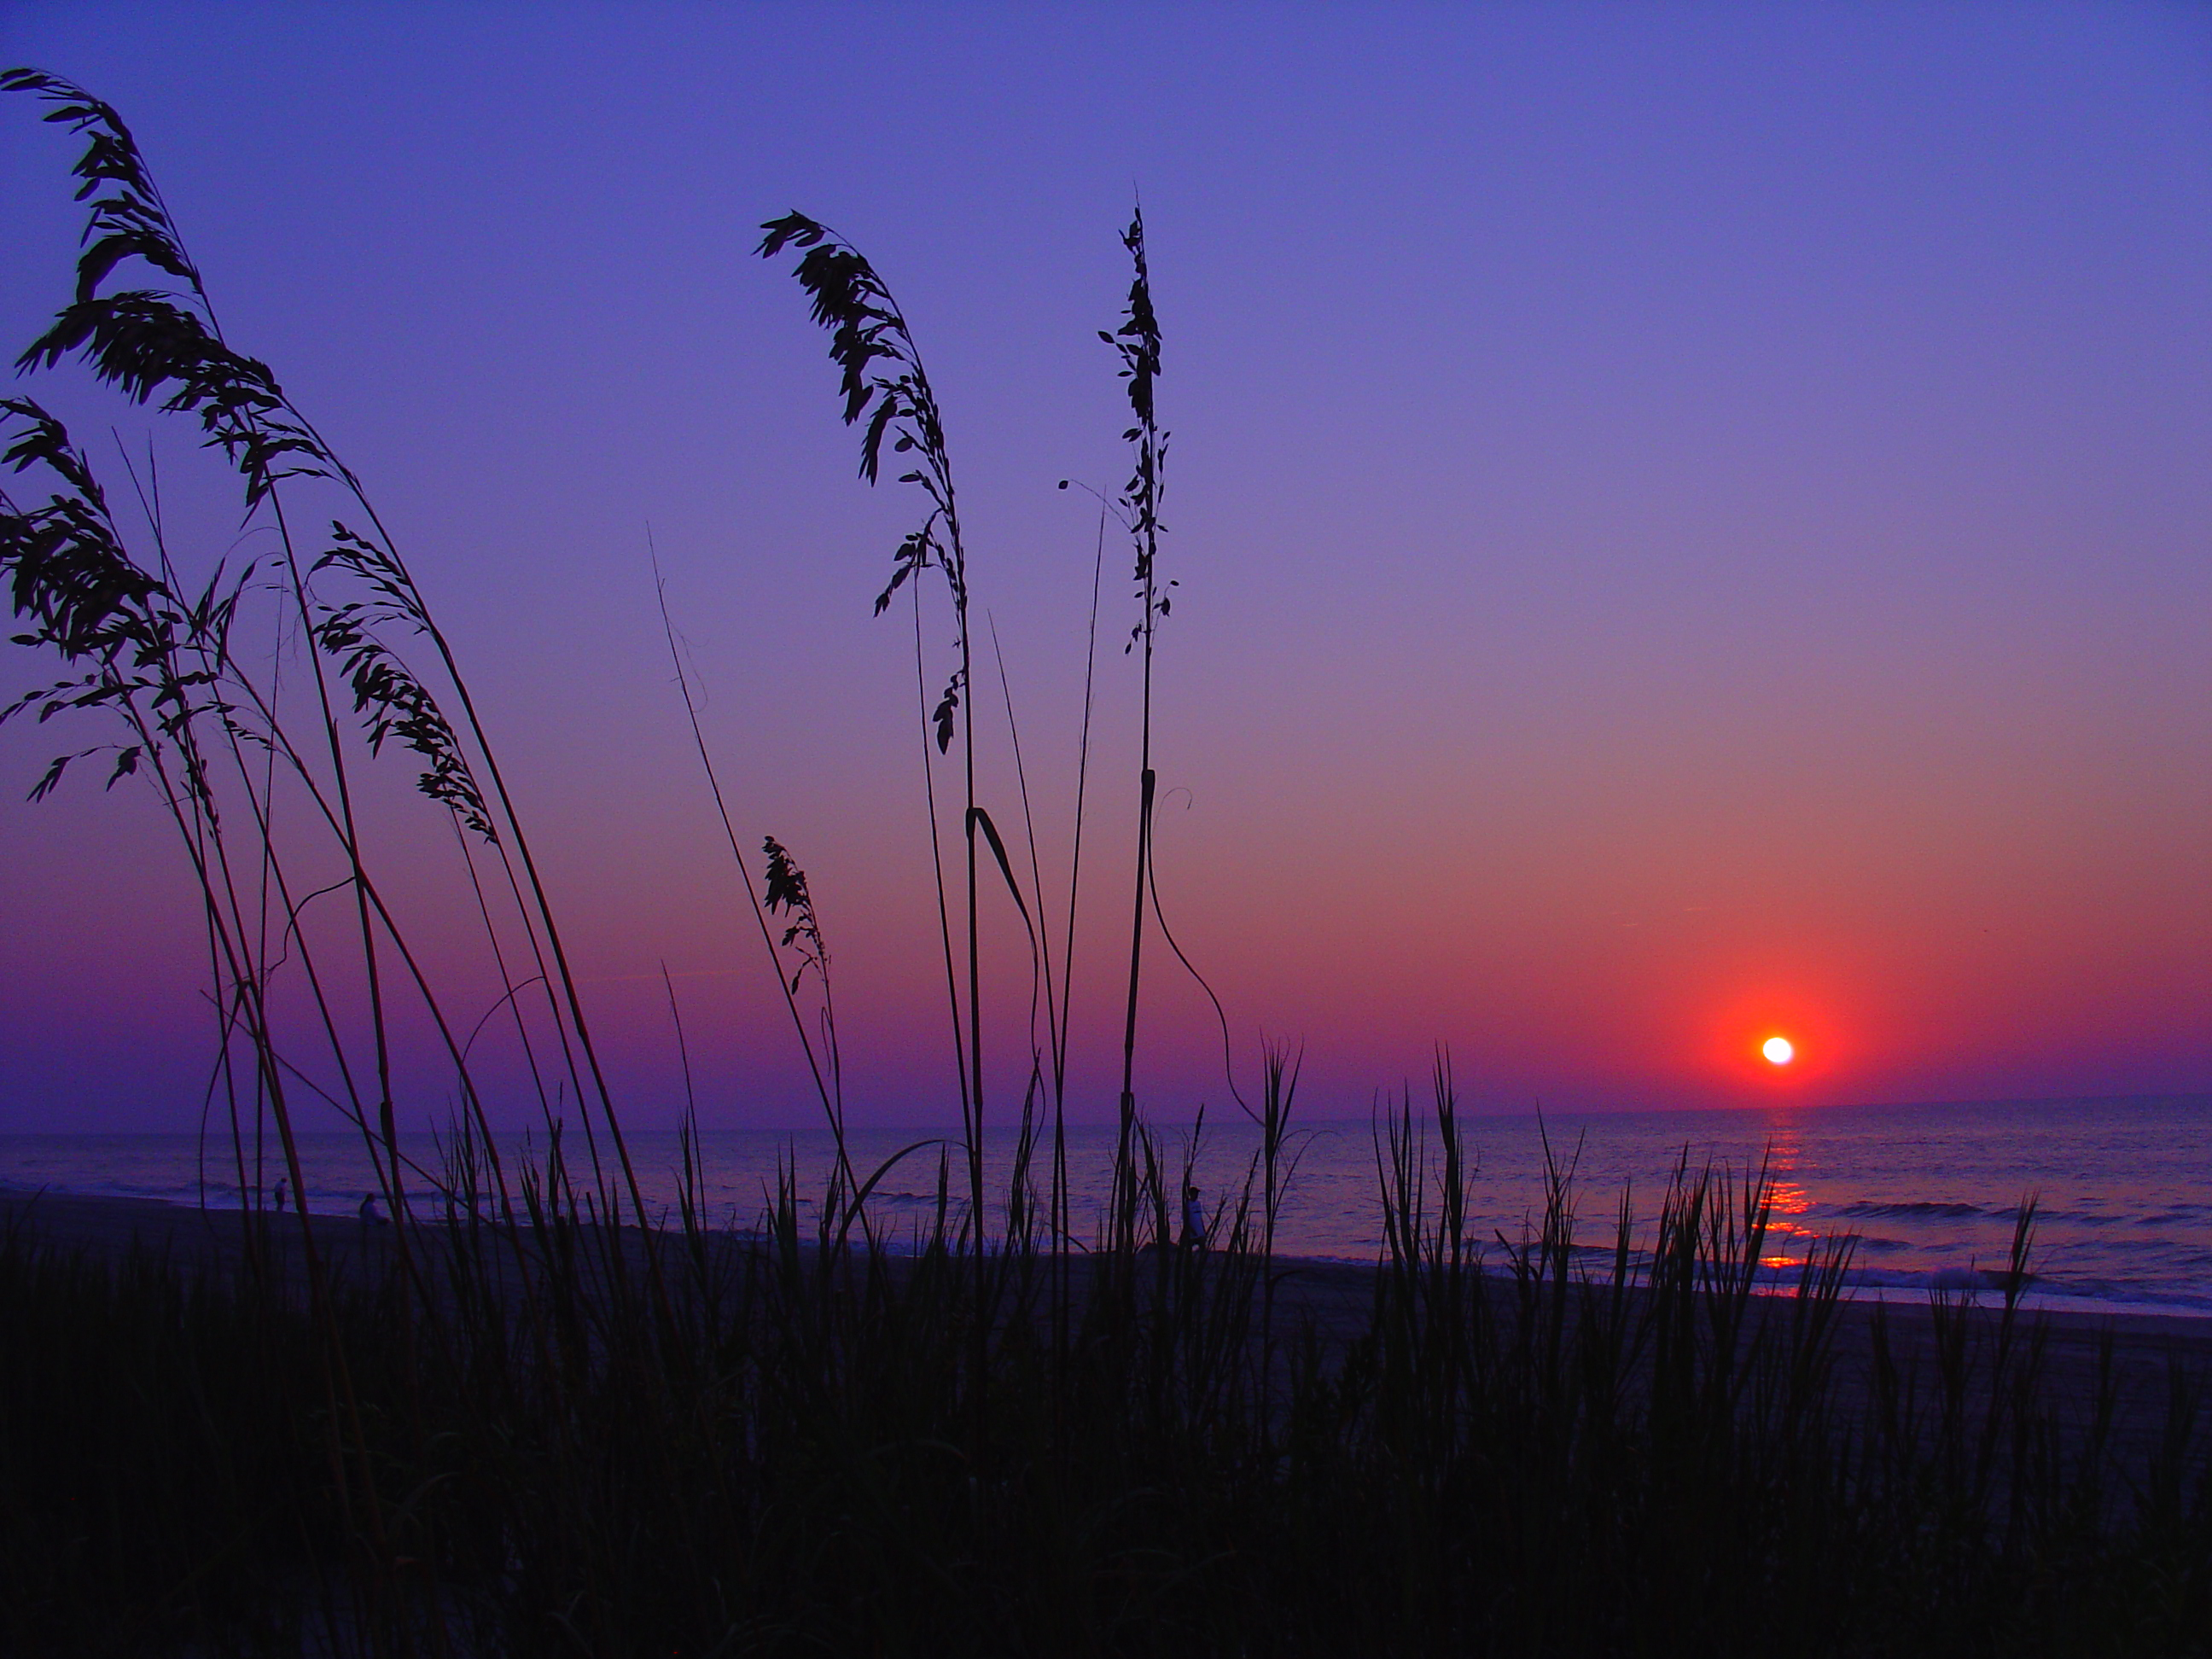 http://upload.wikimedia.org/wikipedia/commons/e/e6/Myrtle_Beach_Sunrise1.jpg